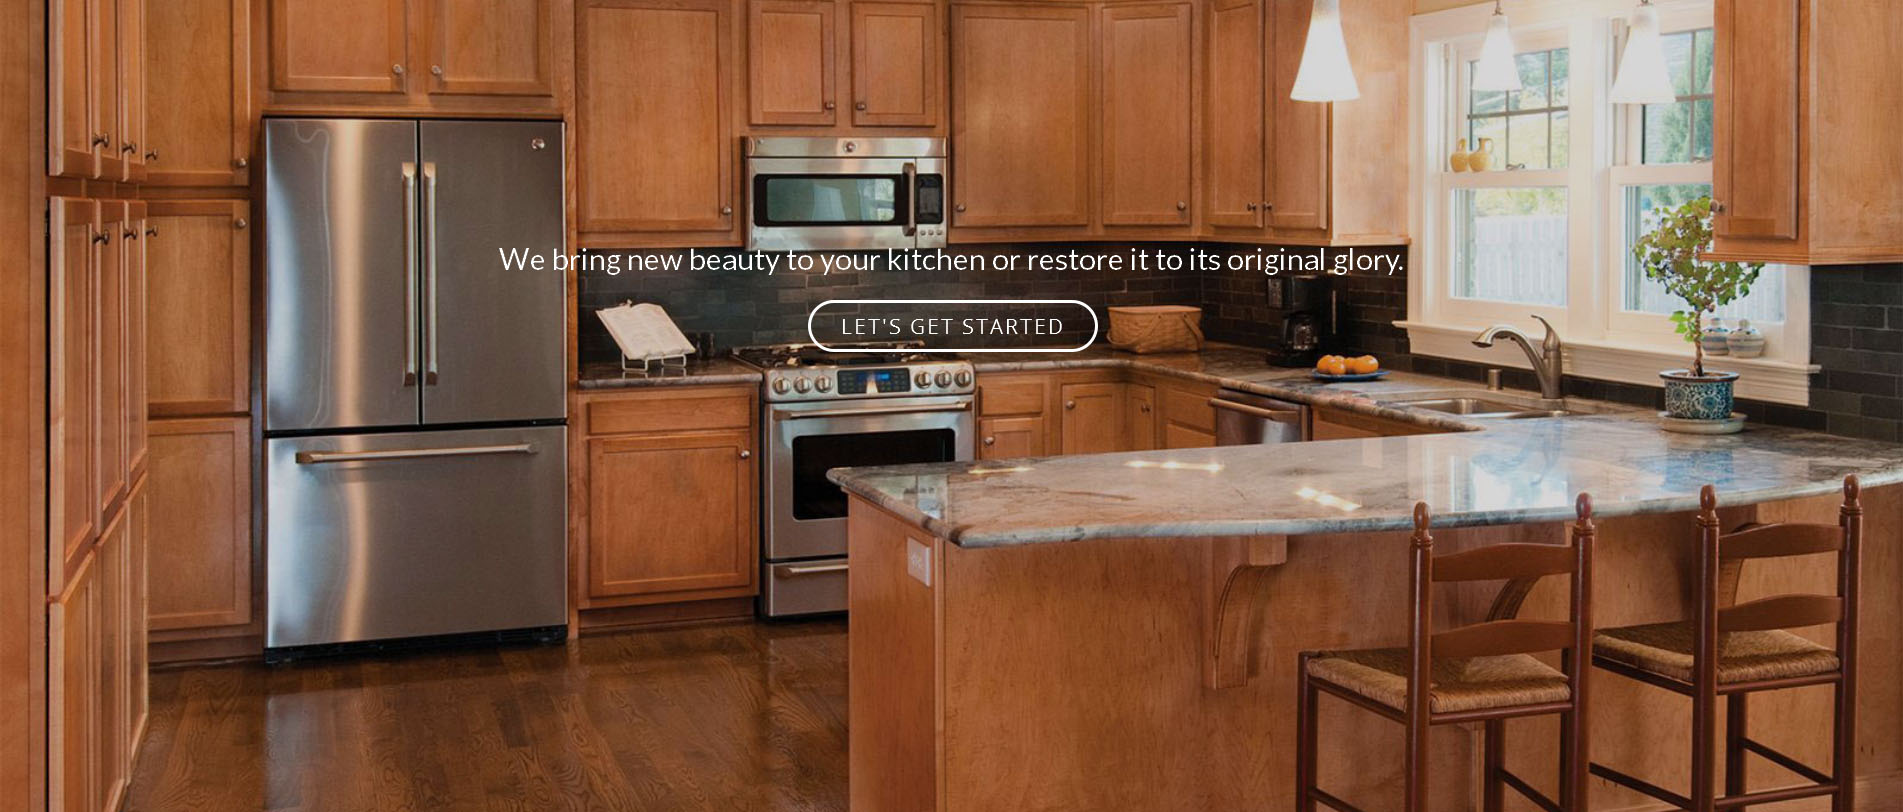 Refacing cabinets furniture refurbishing in acton ma for Catalyzed lacquer kitchen cabinets